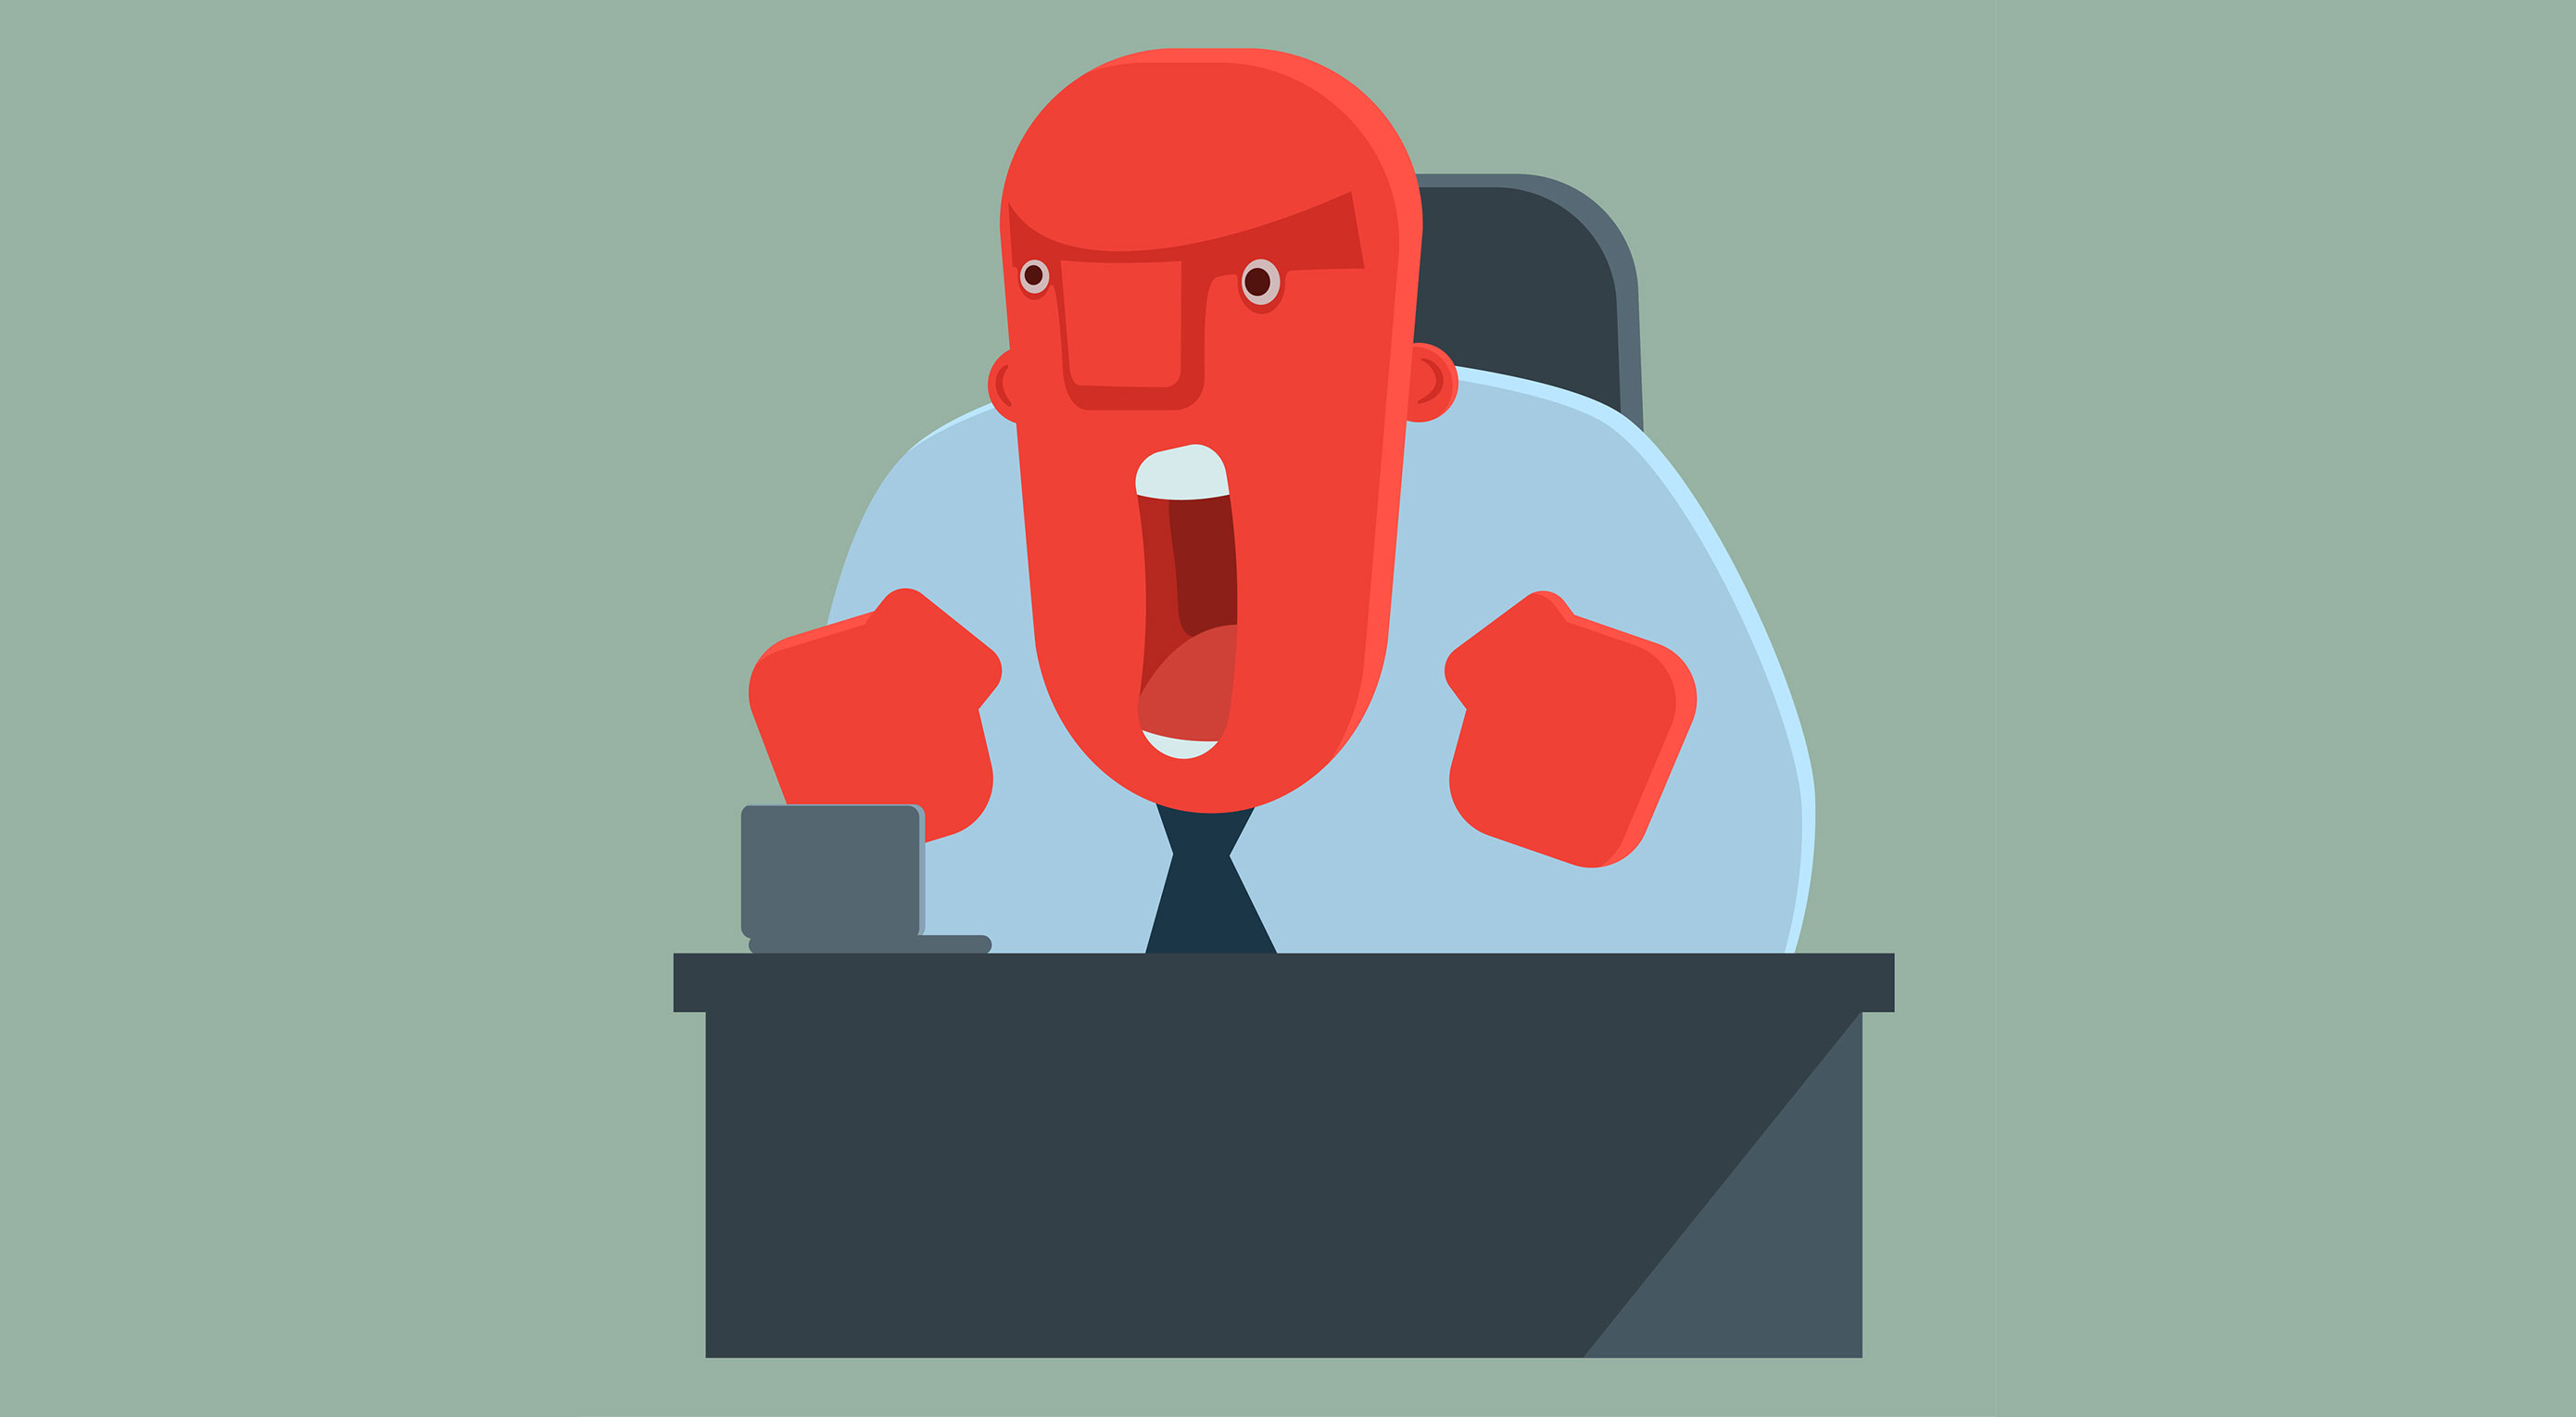 6 Ways to Design for Anger